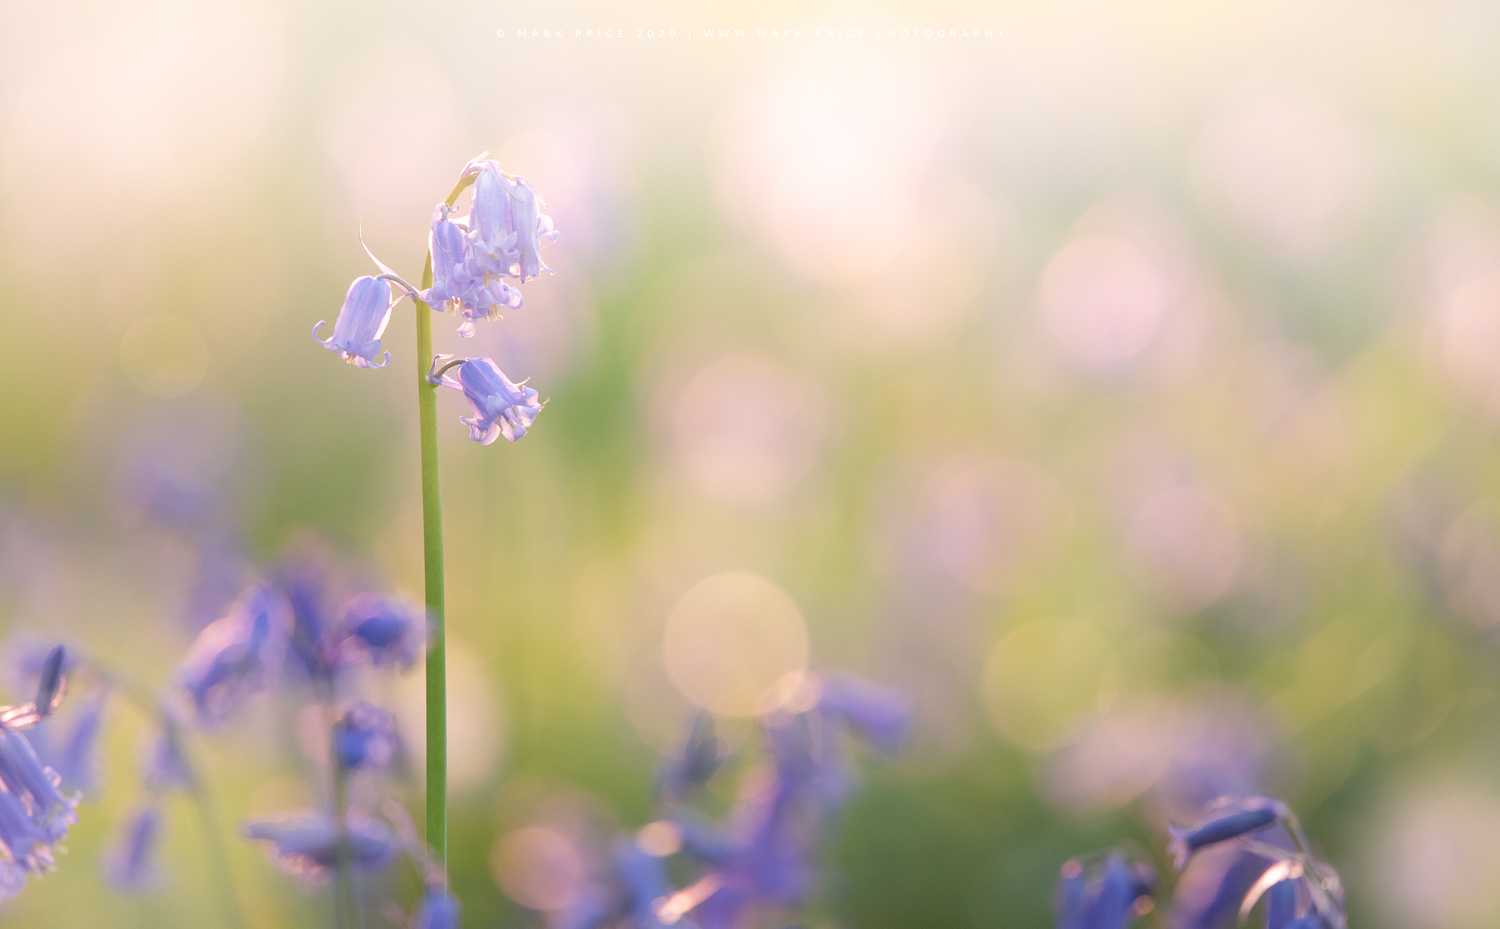 A lone bluebell stands out in a spring lit field